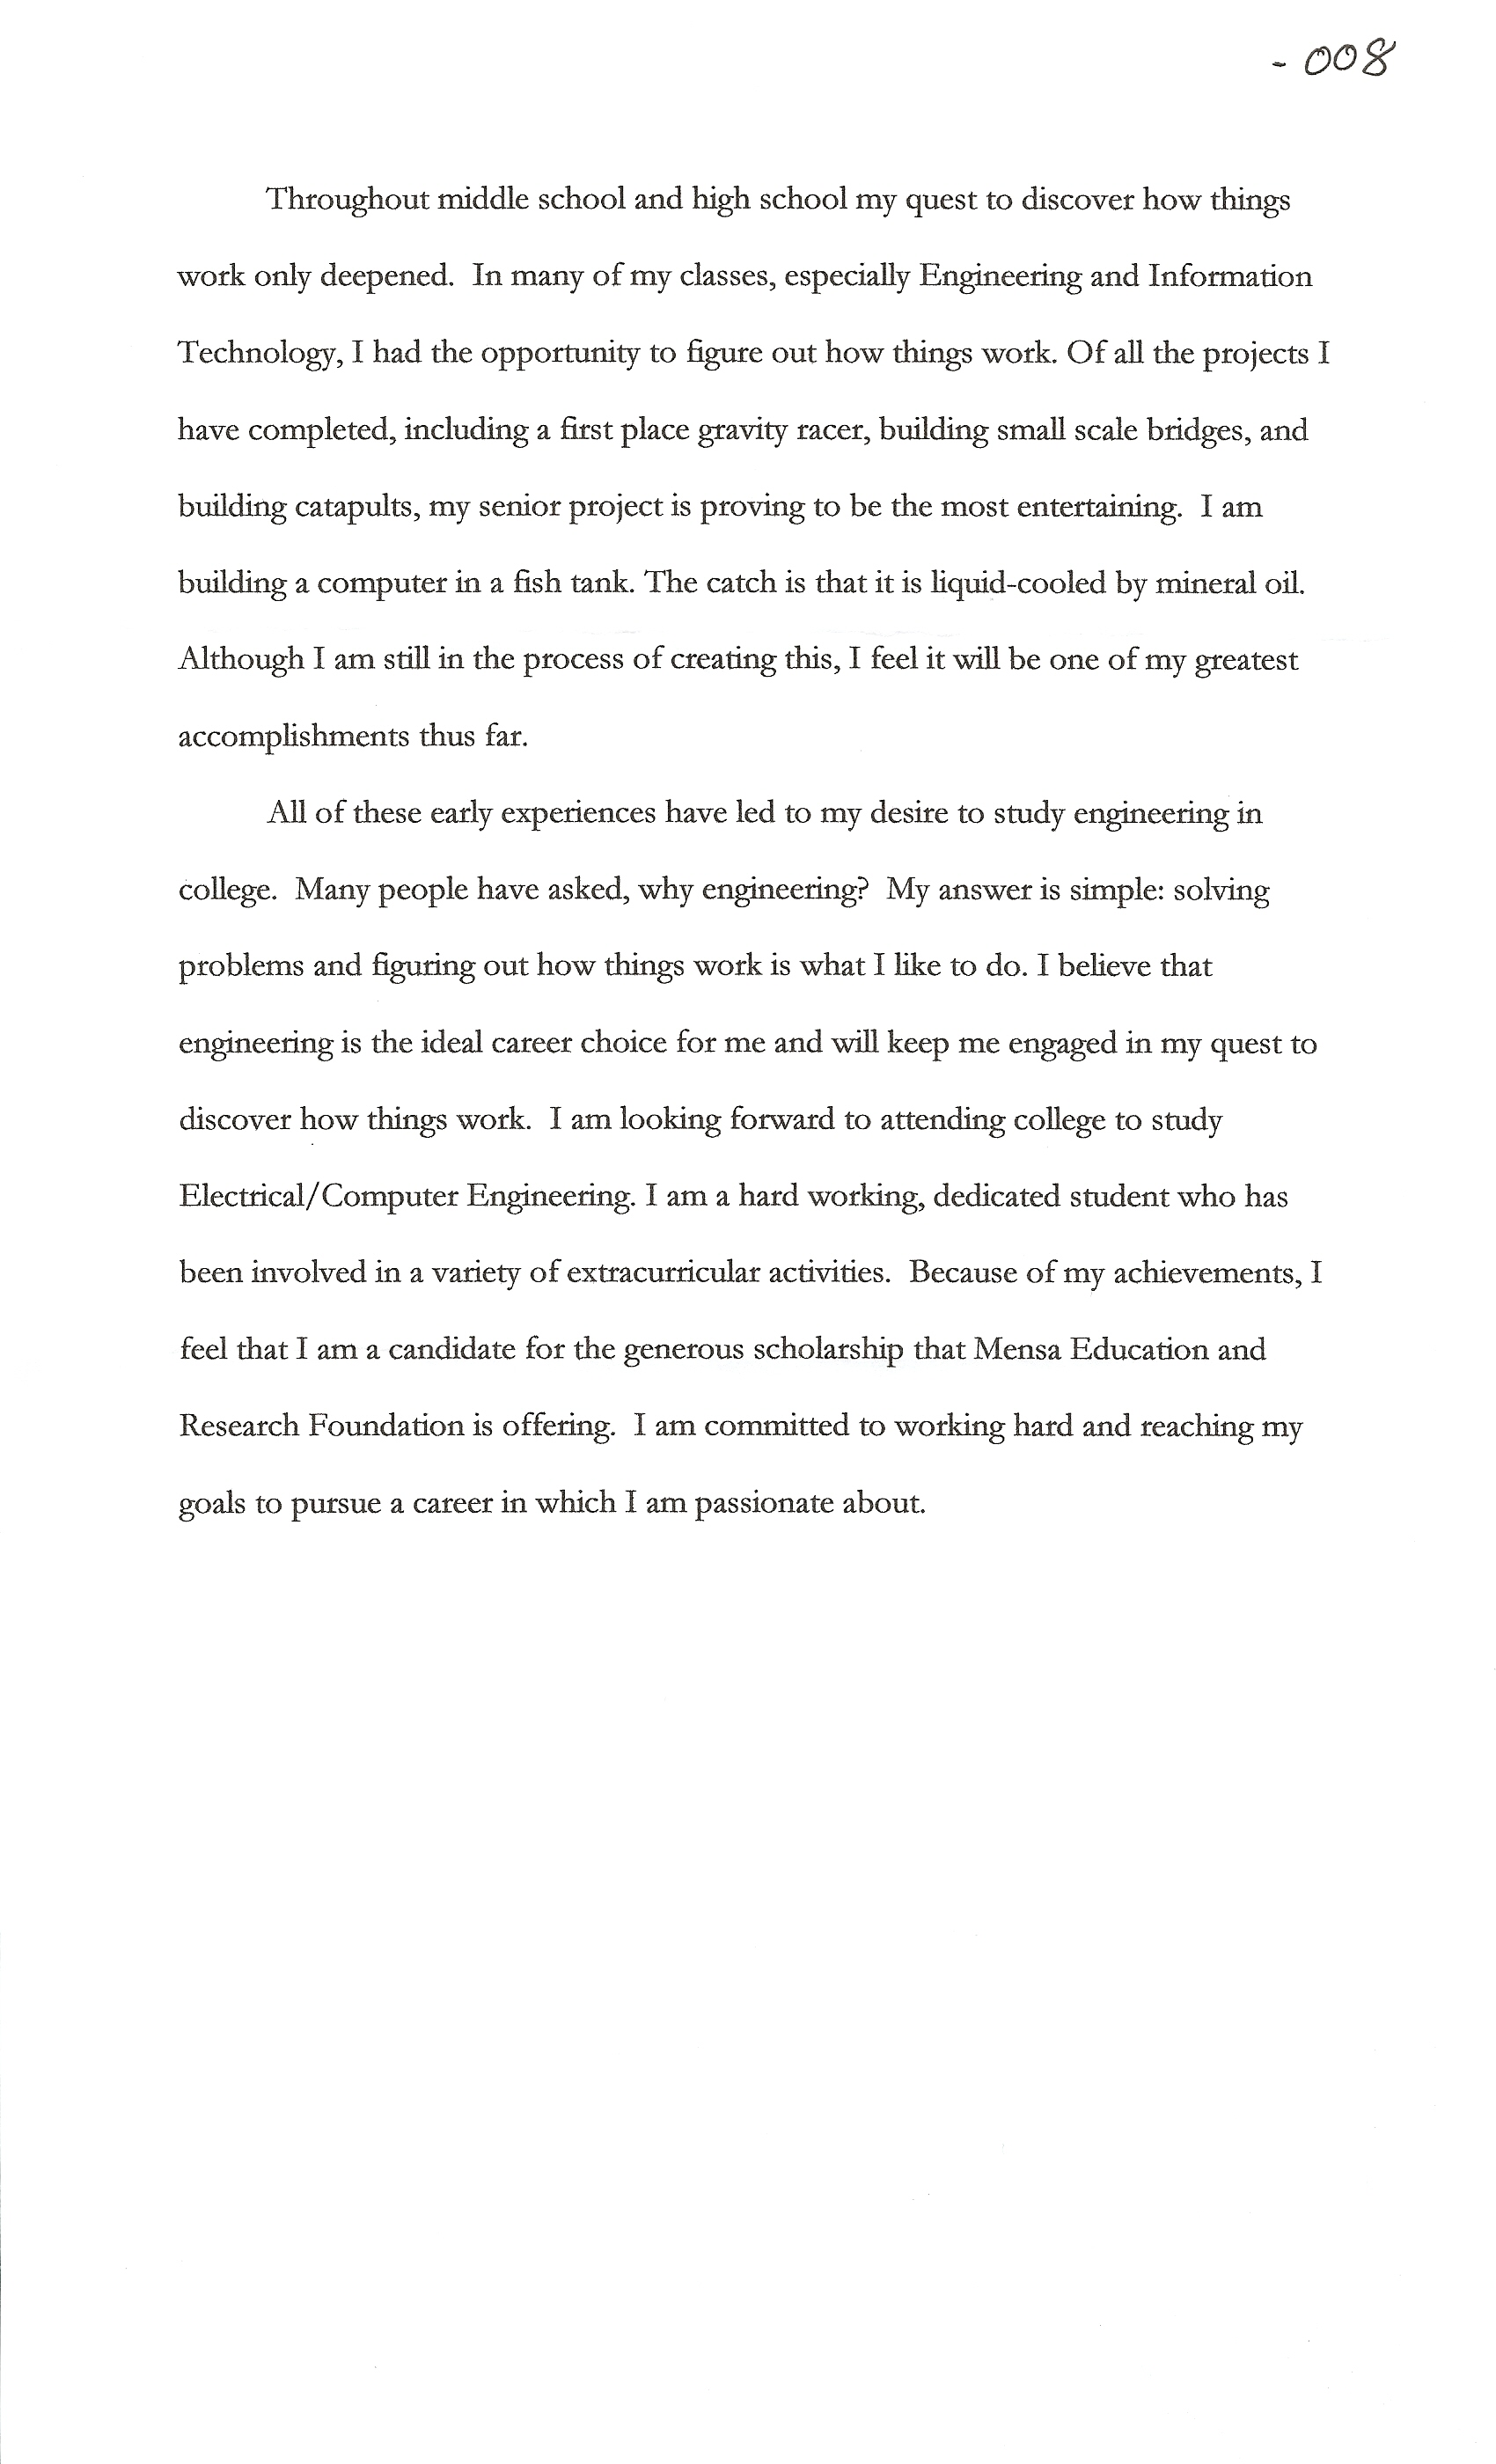 sell thesis statement completed orders today for crowland define thesis statement what is a strong thesis statement thesis statement for a persuasive essay